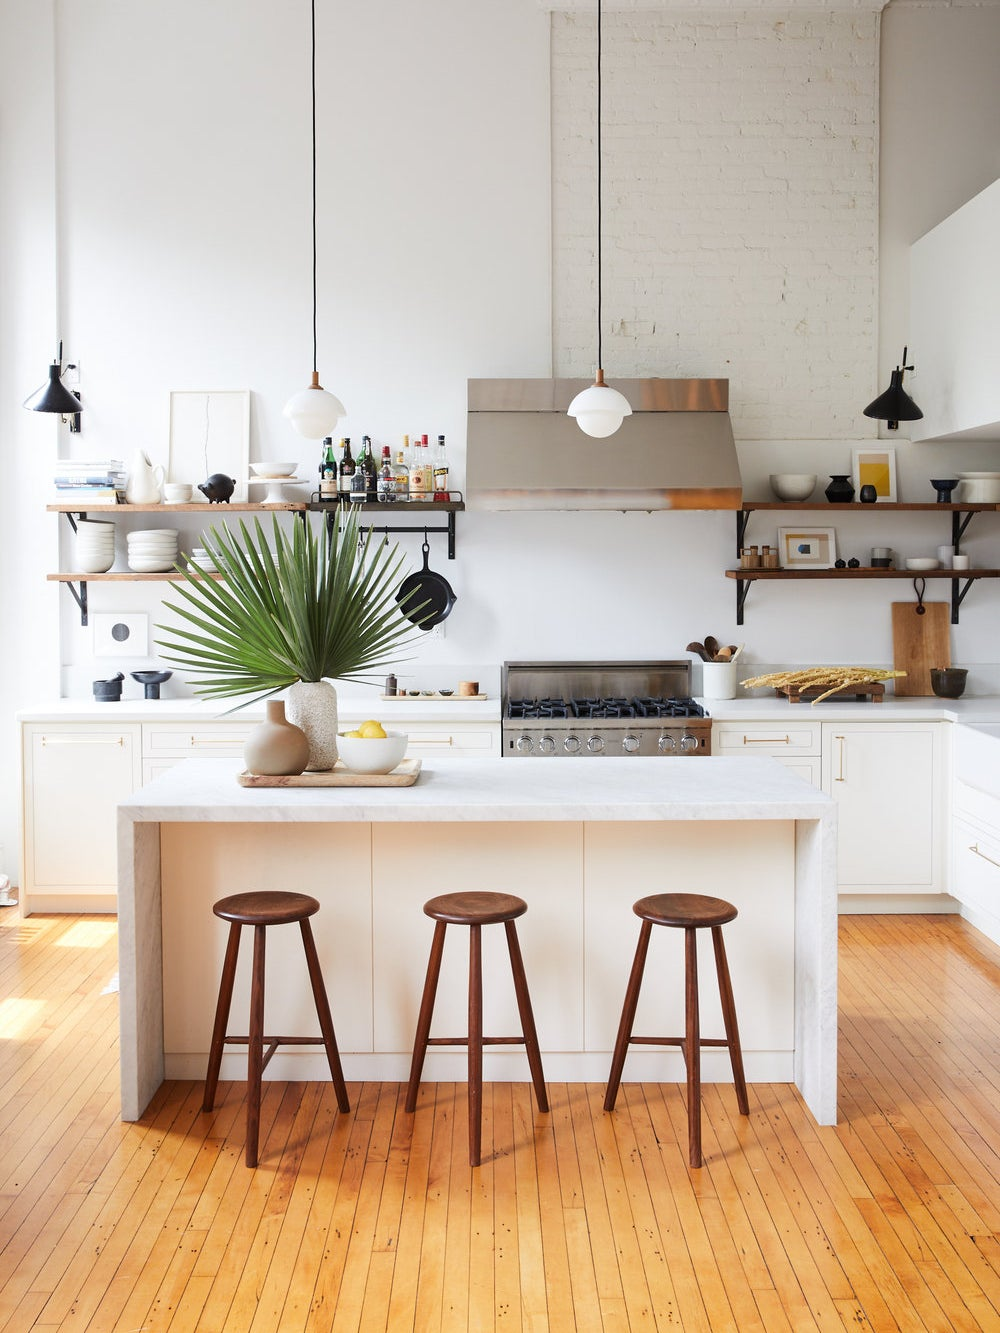 27 Stunning Kitchens That Belong on Your Pinterest Board